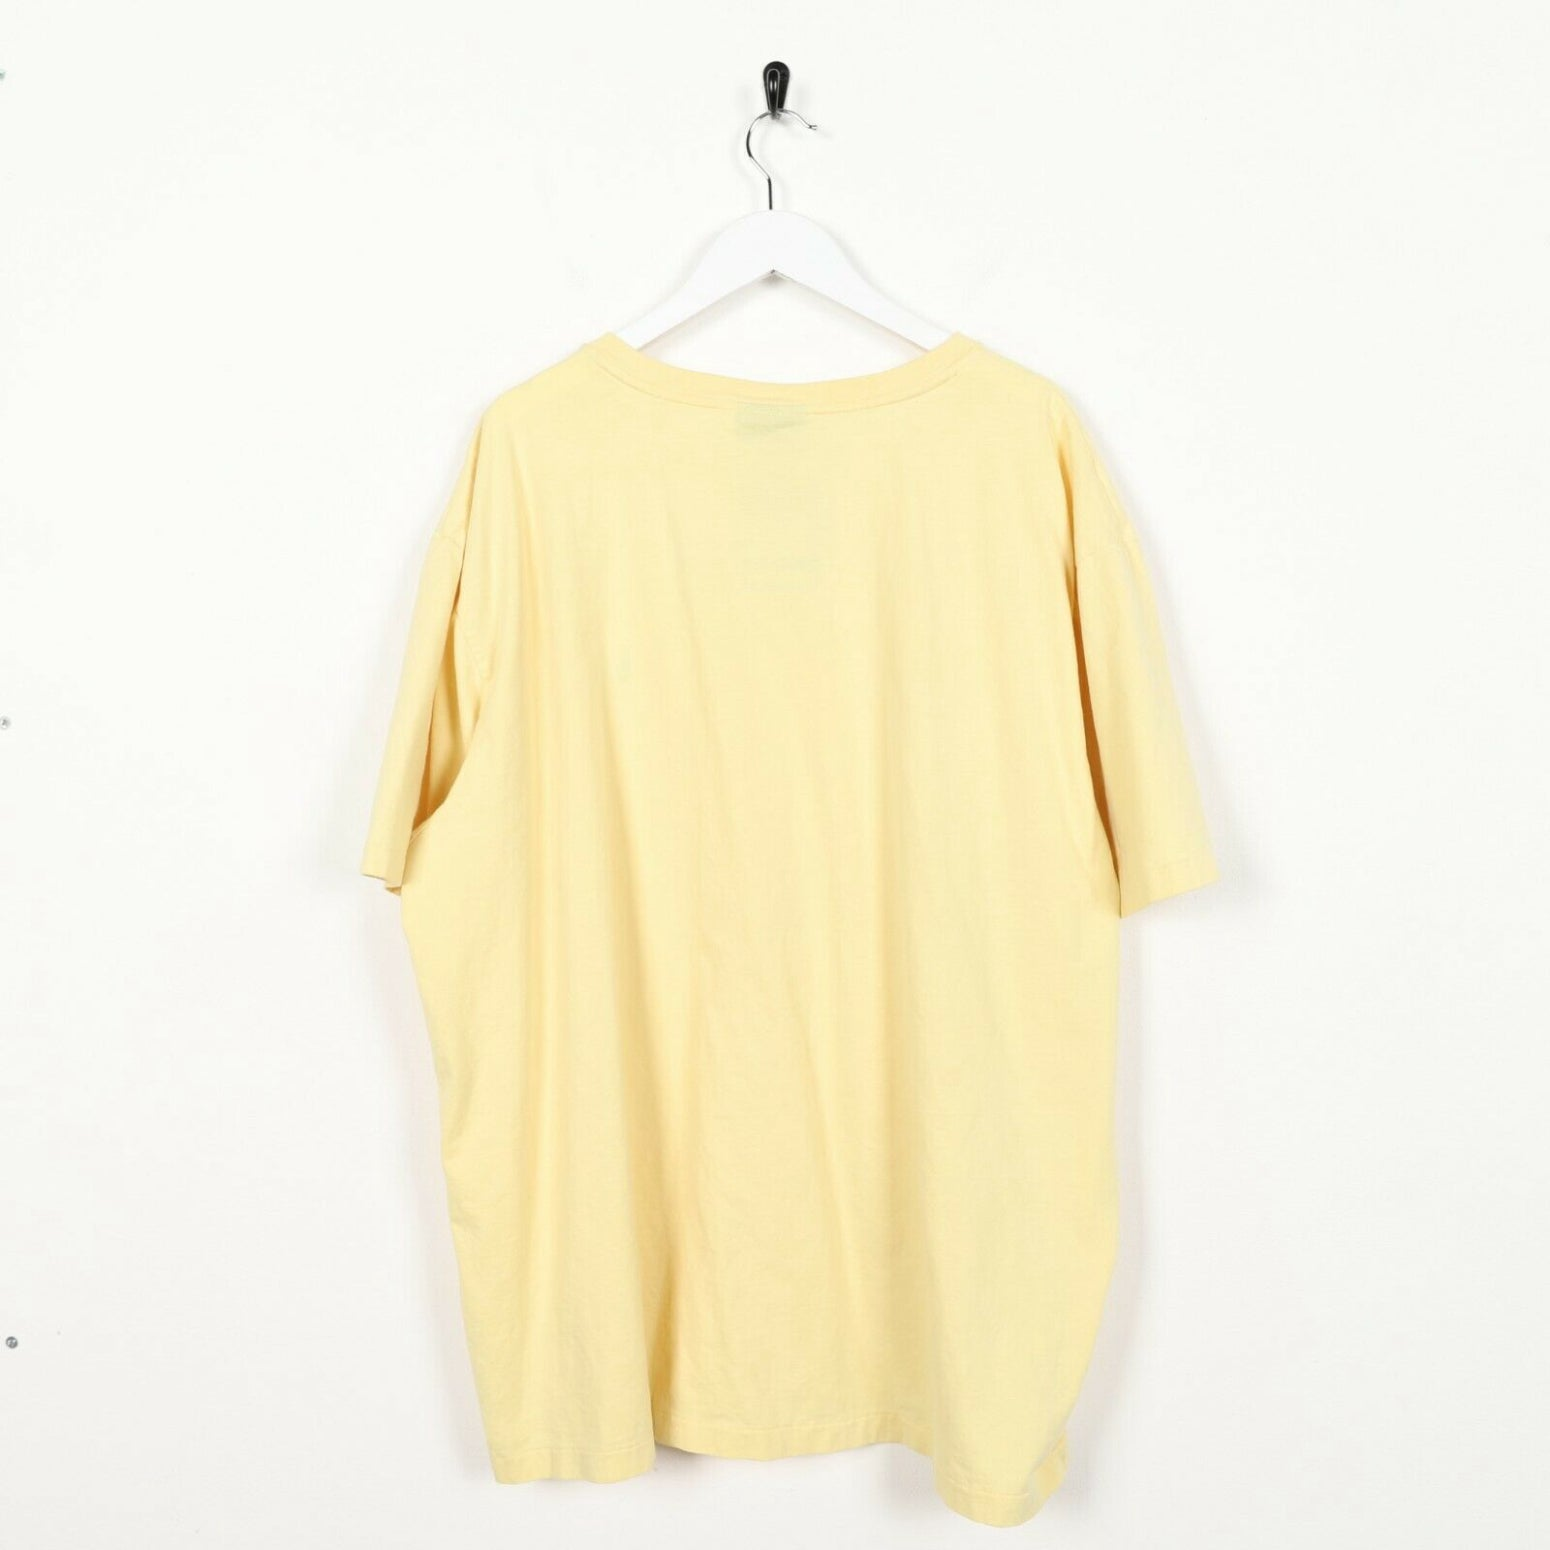 Vintage RALPH LAUREN Small Logo T Shirt Tee Yellow 2XL